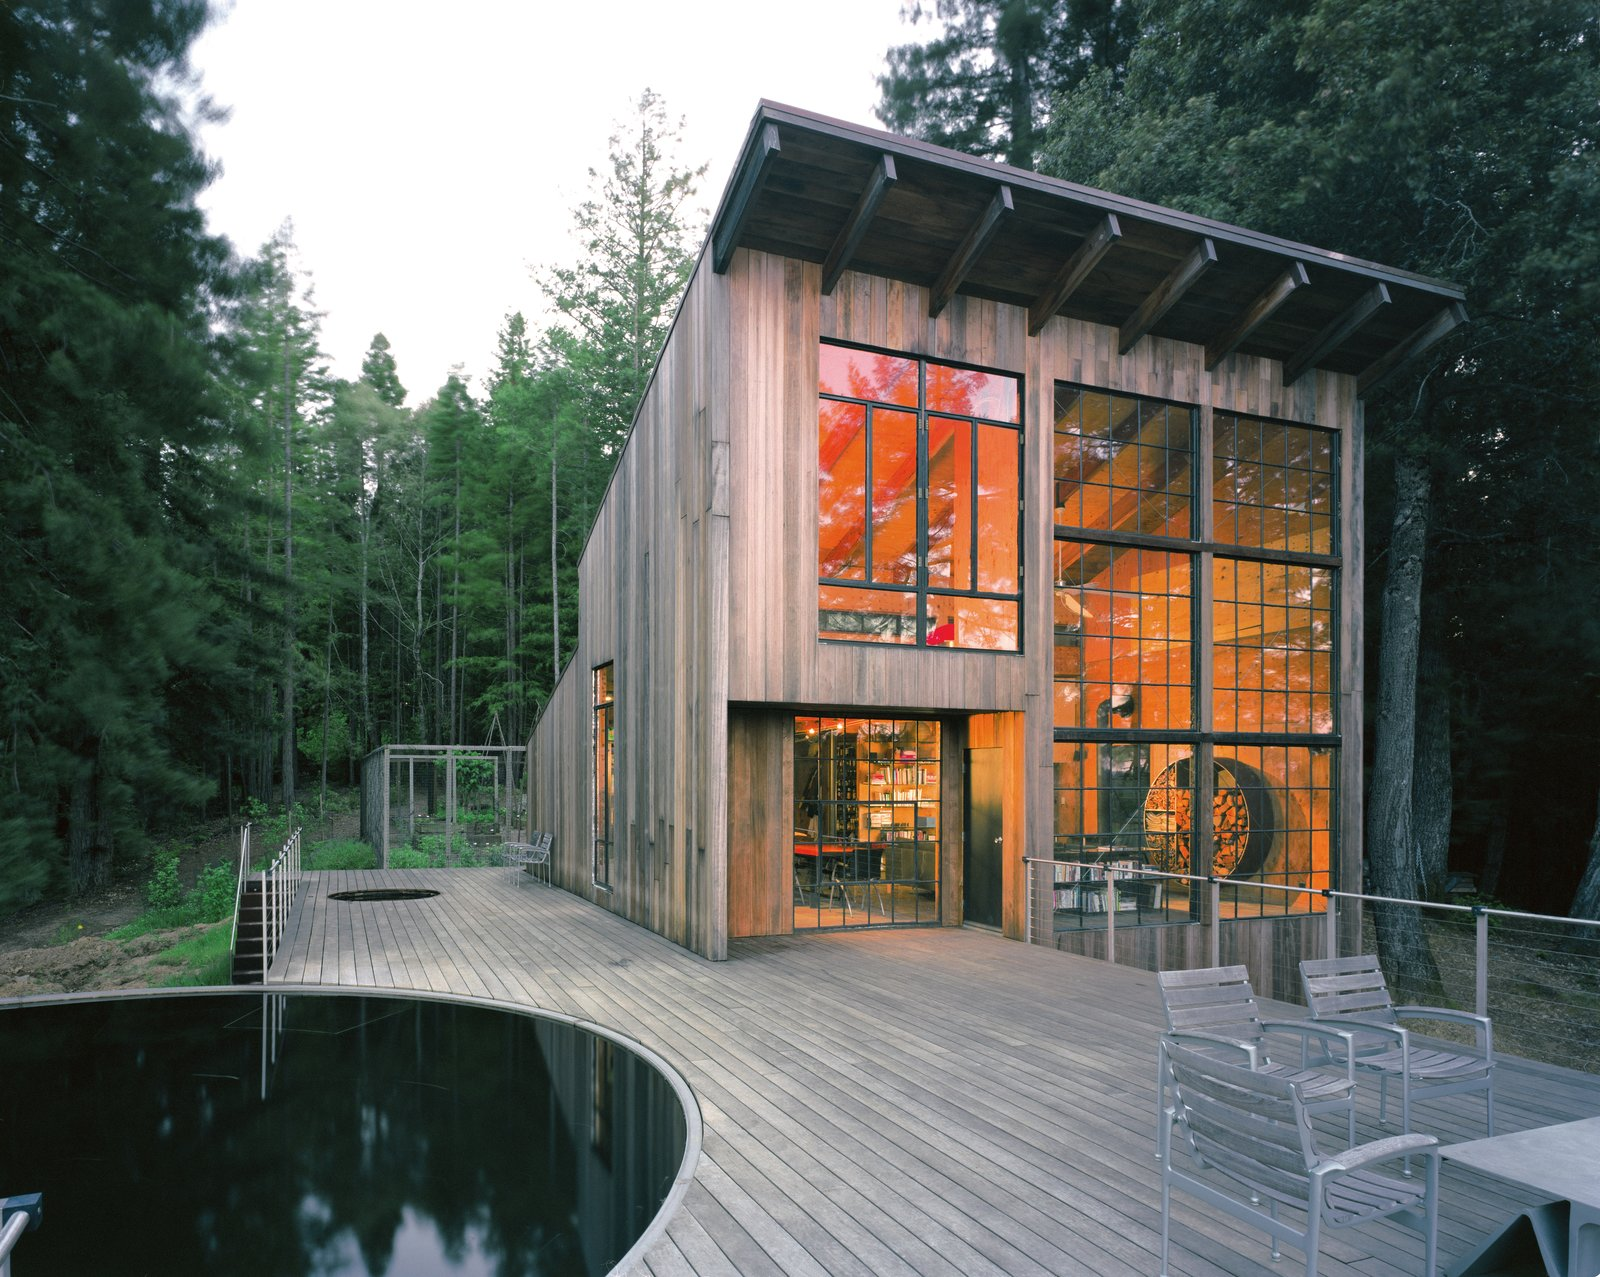 Photo 1 of 7 in Beauty and Brains: Building Sustainably With Redwood